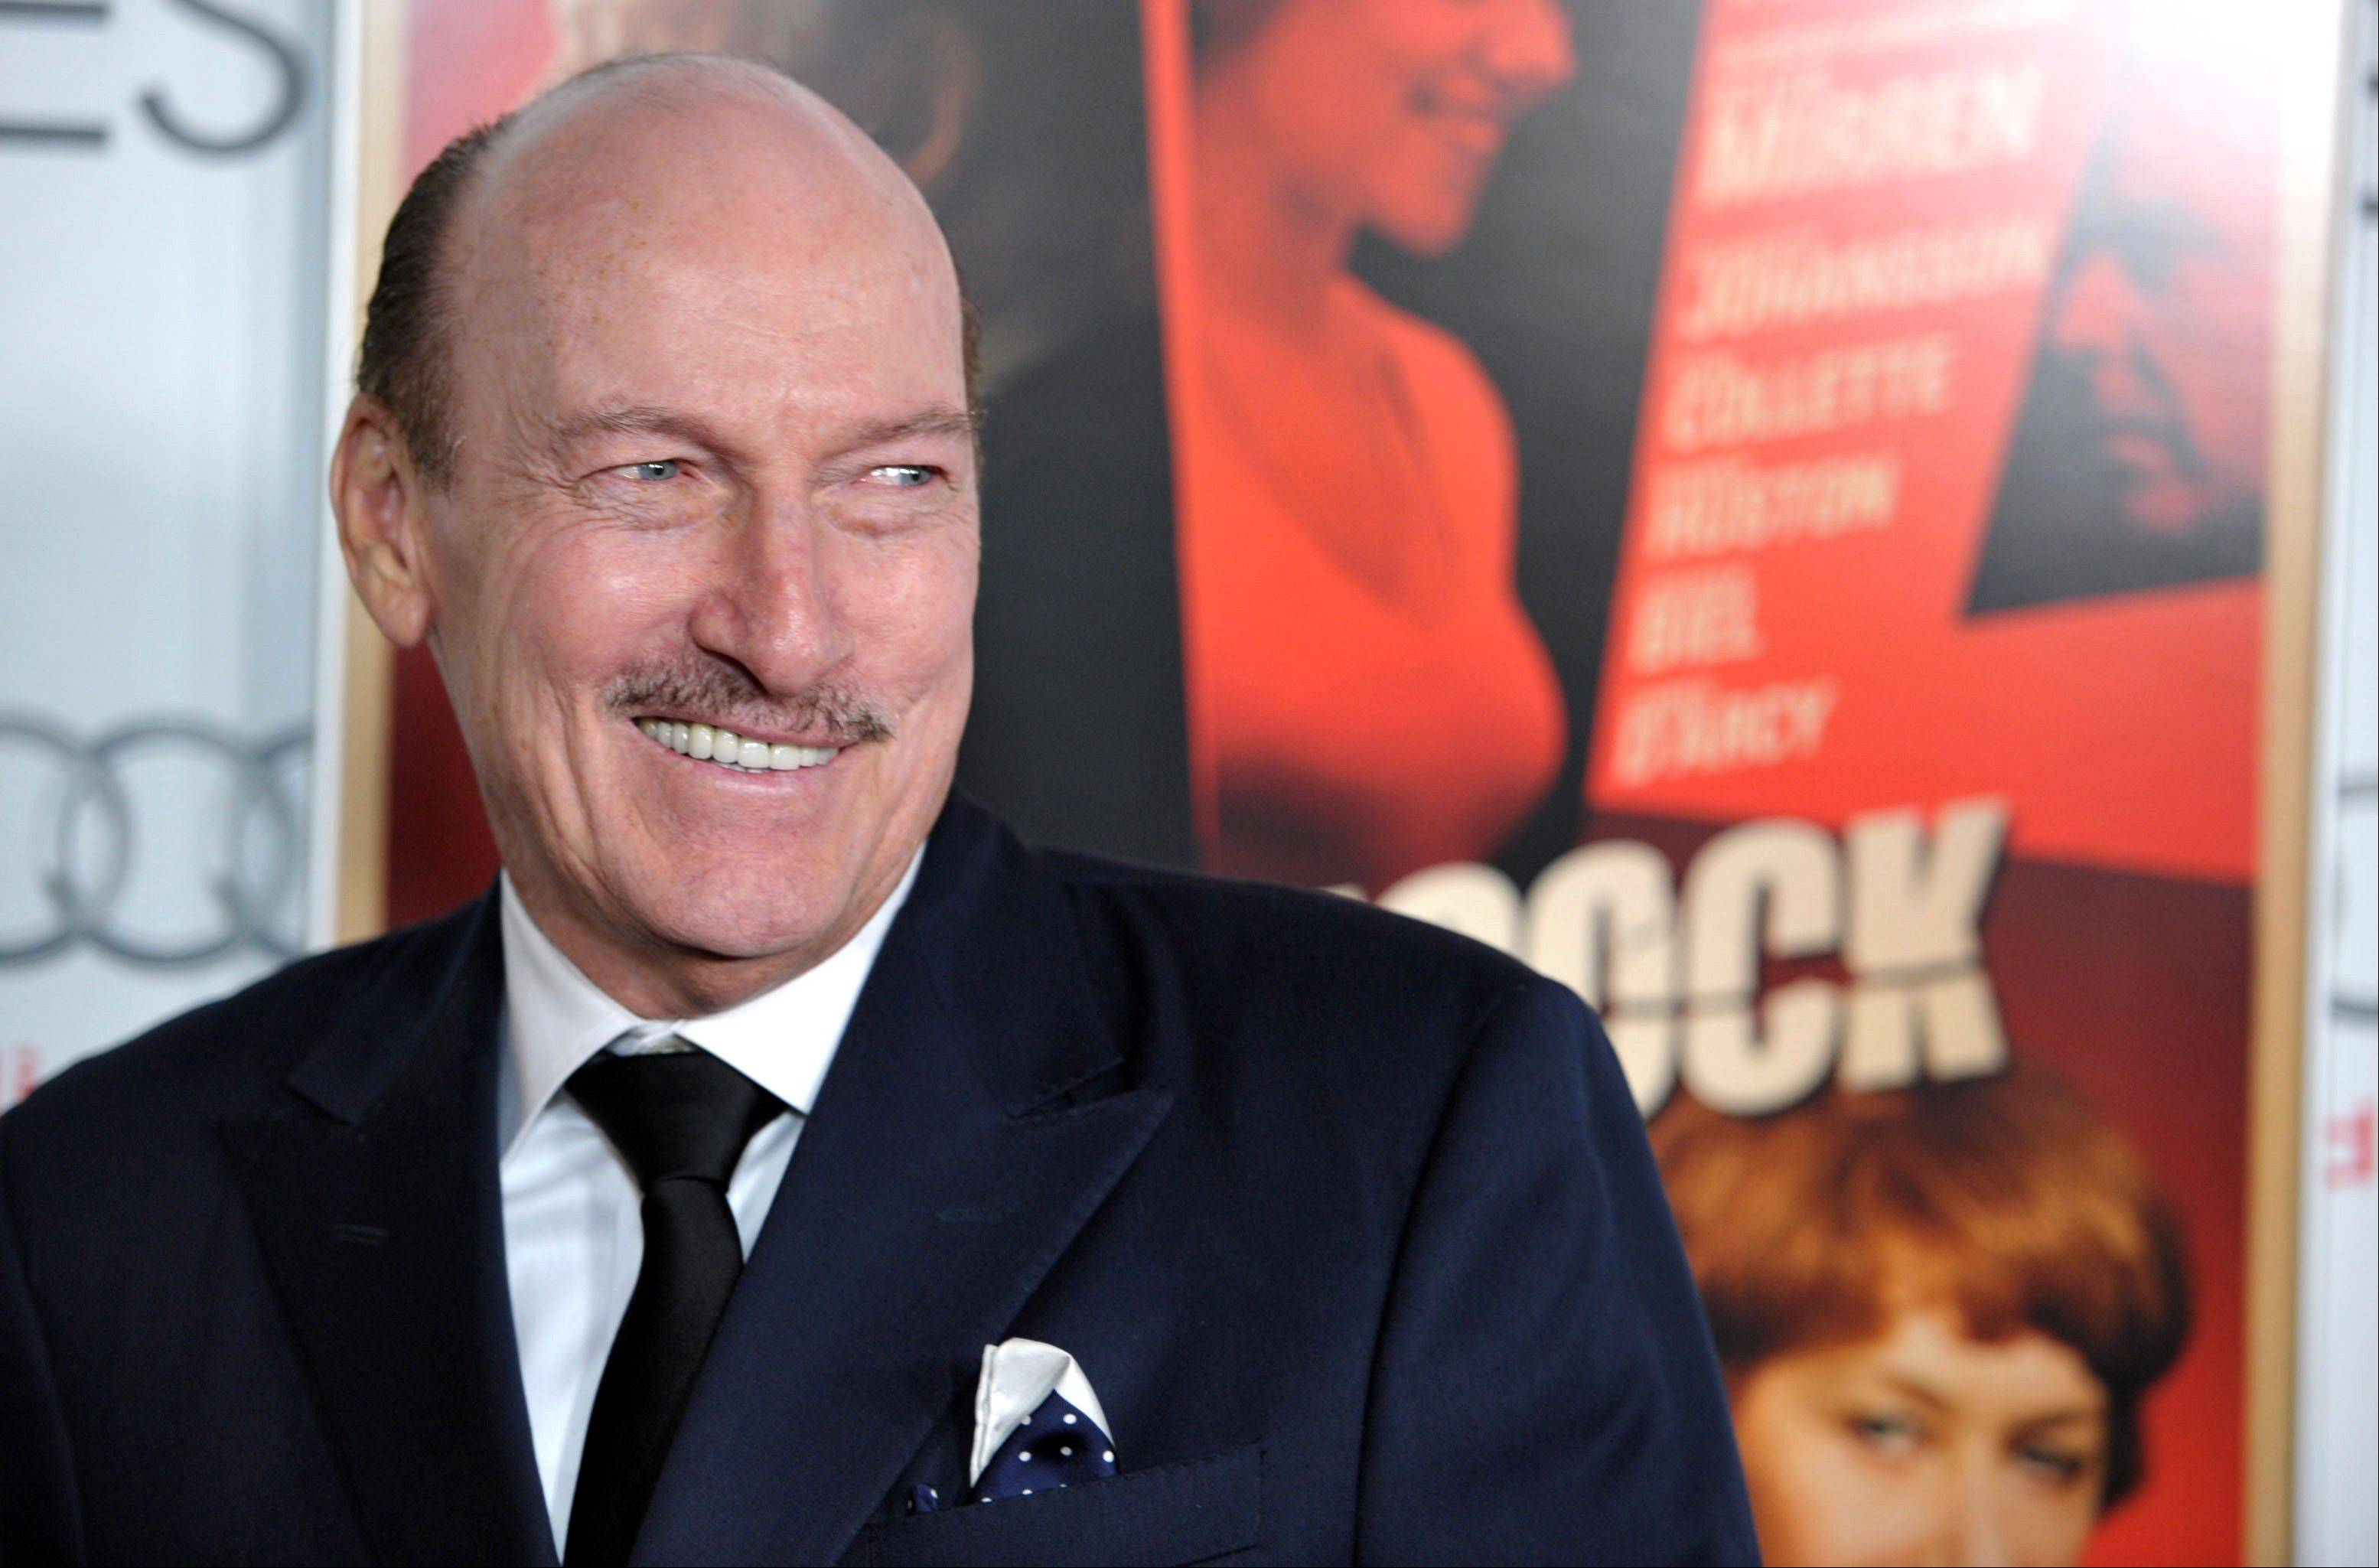 Ed Lauter, whose long, angular face and stern bearing made him an instantly recognizable figure in scores of movies and TV shows during a career that stretched across five decades, died Wednesday. He was 74.